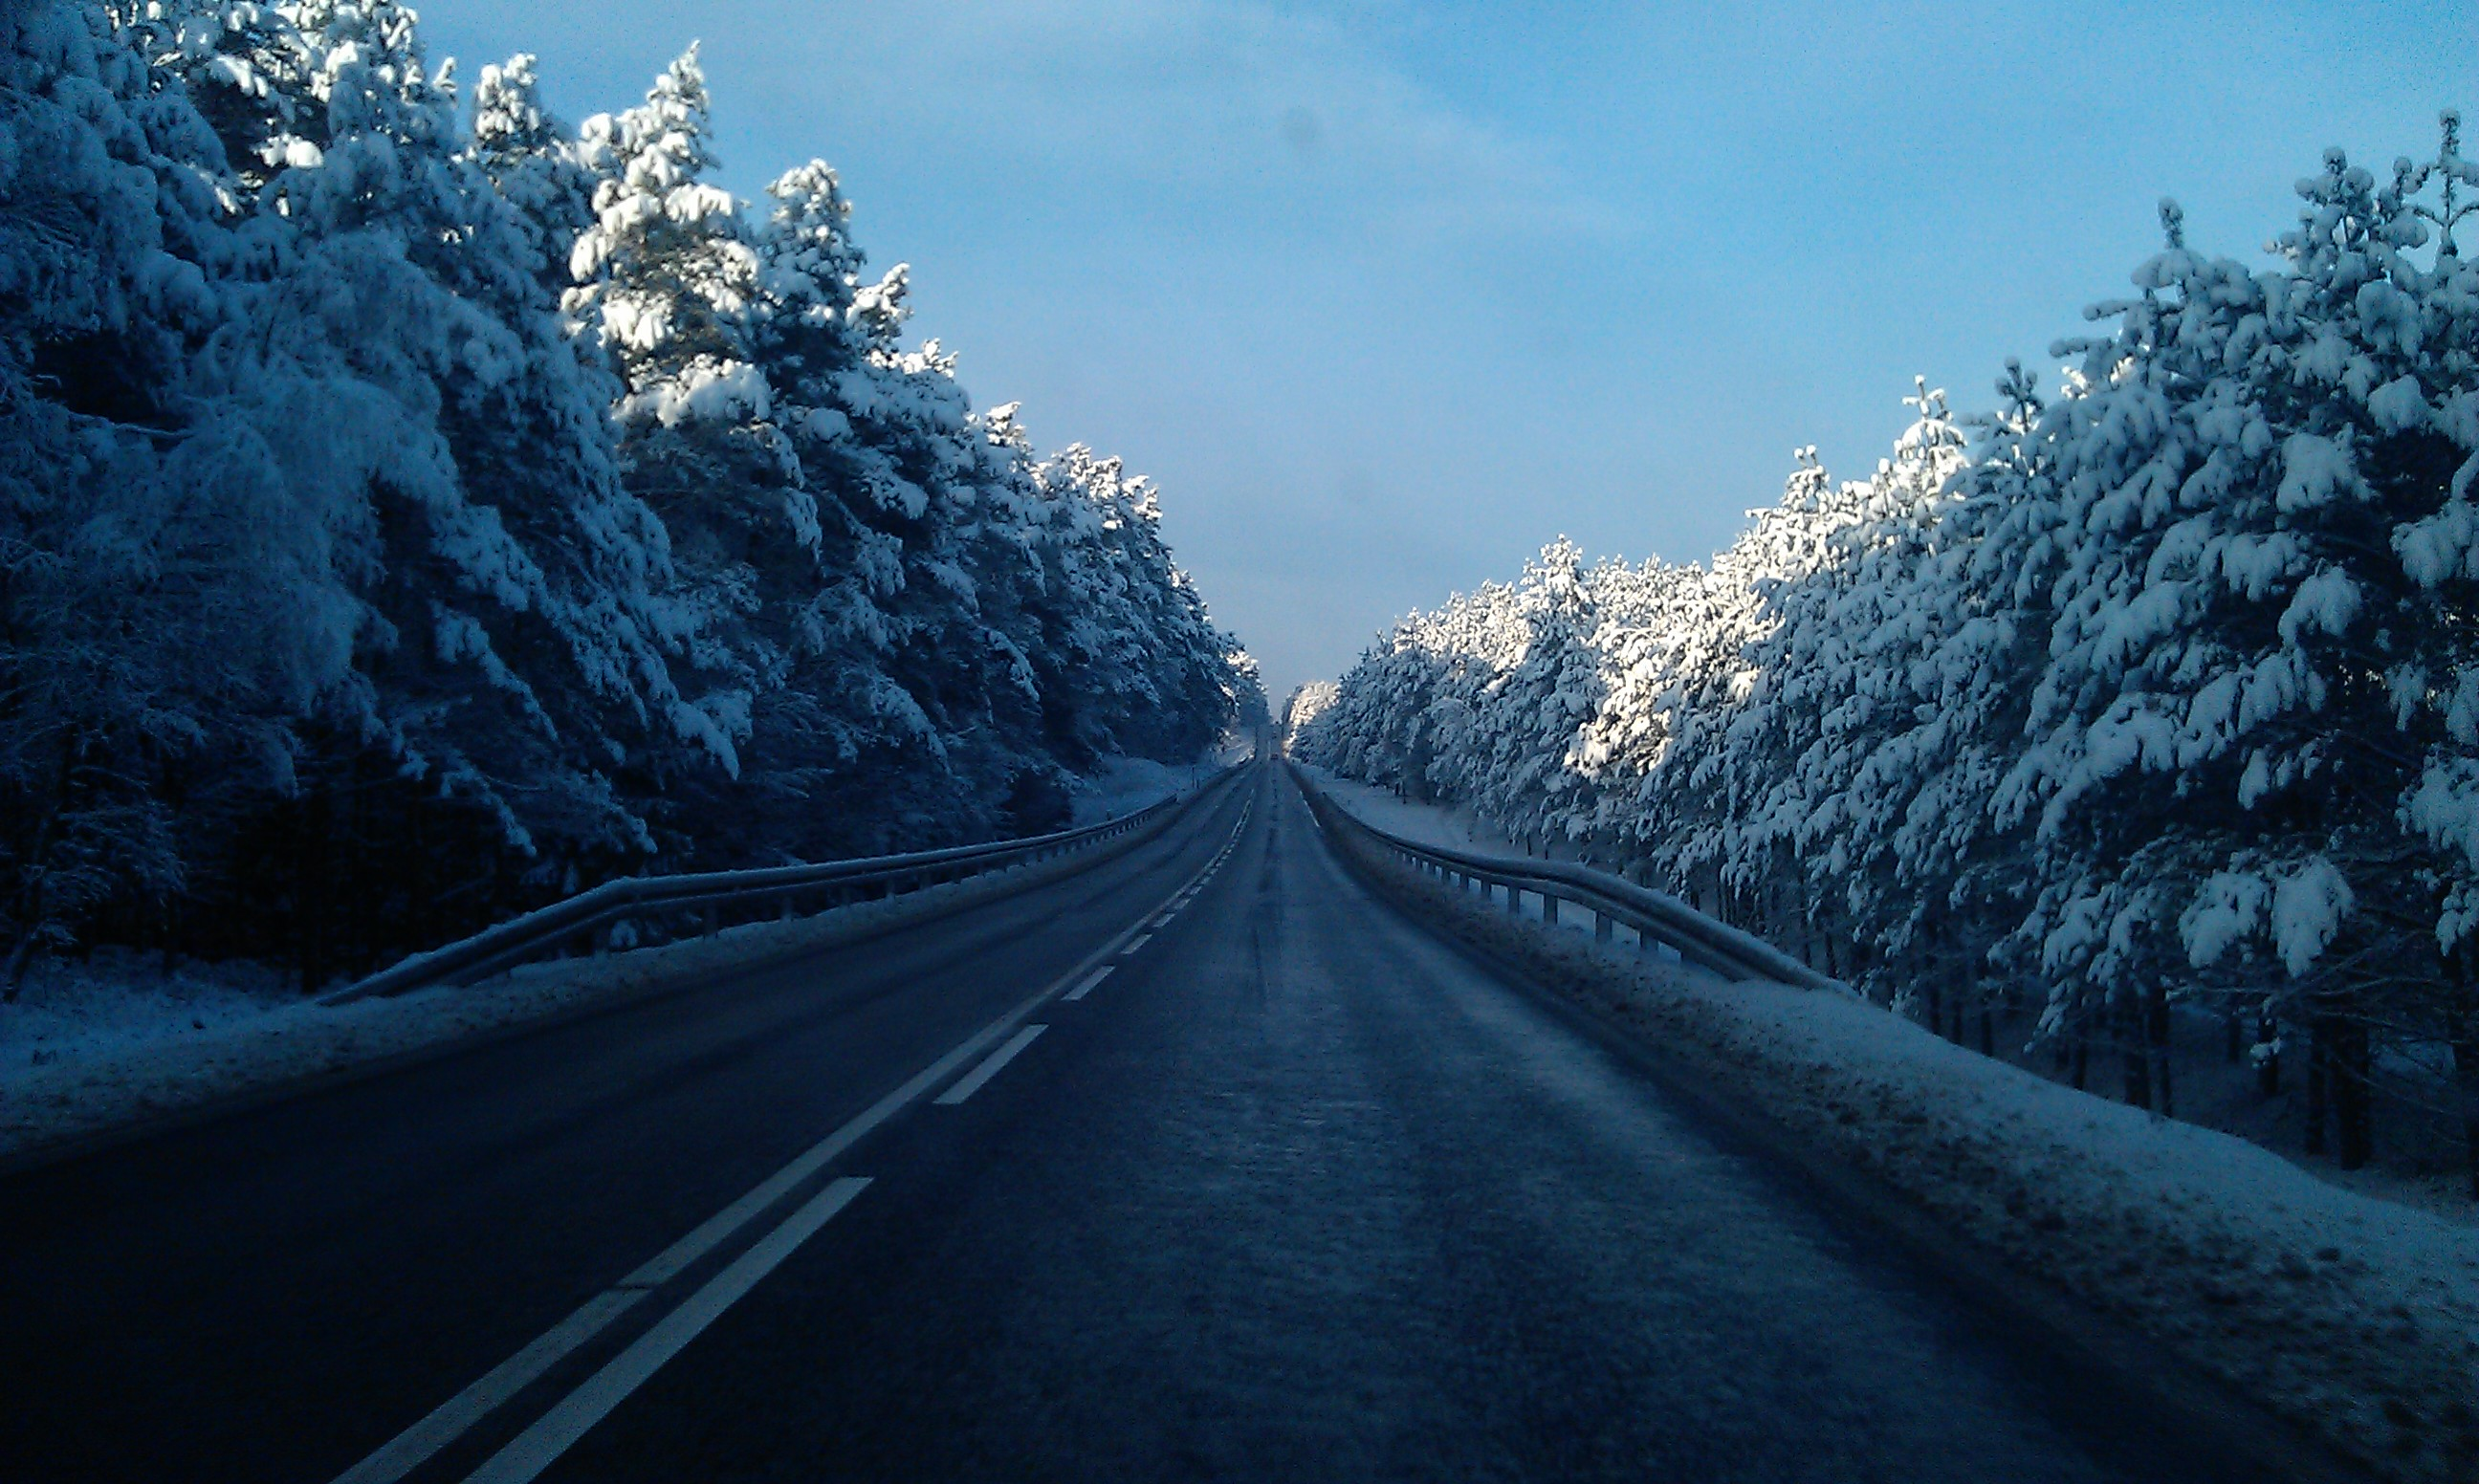 Long hard road out of ... by Martensik